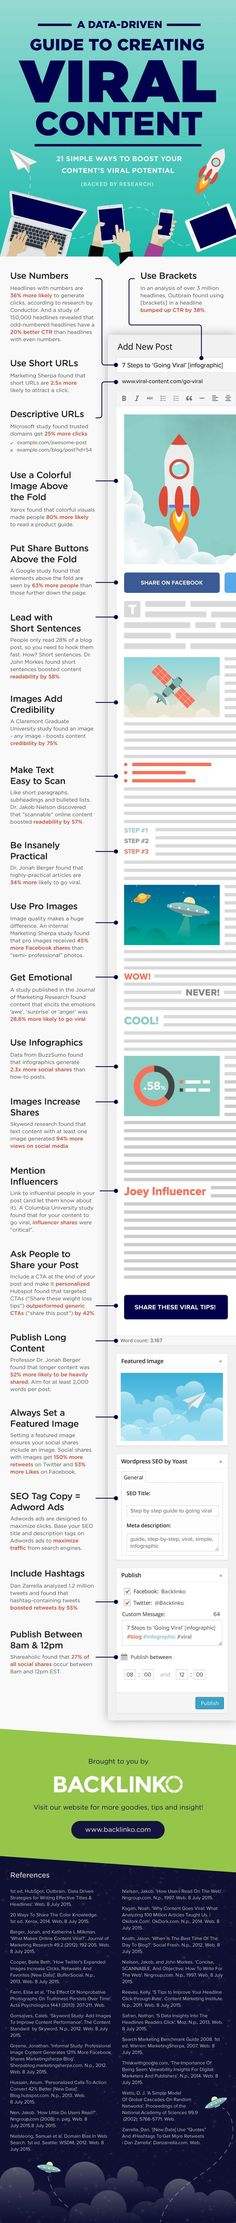 How to Create Viral Content People Can't Wait to Share